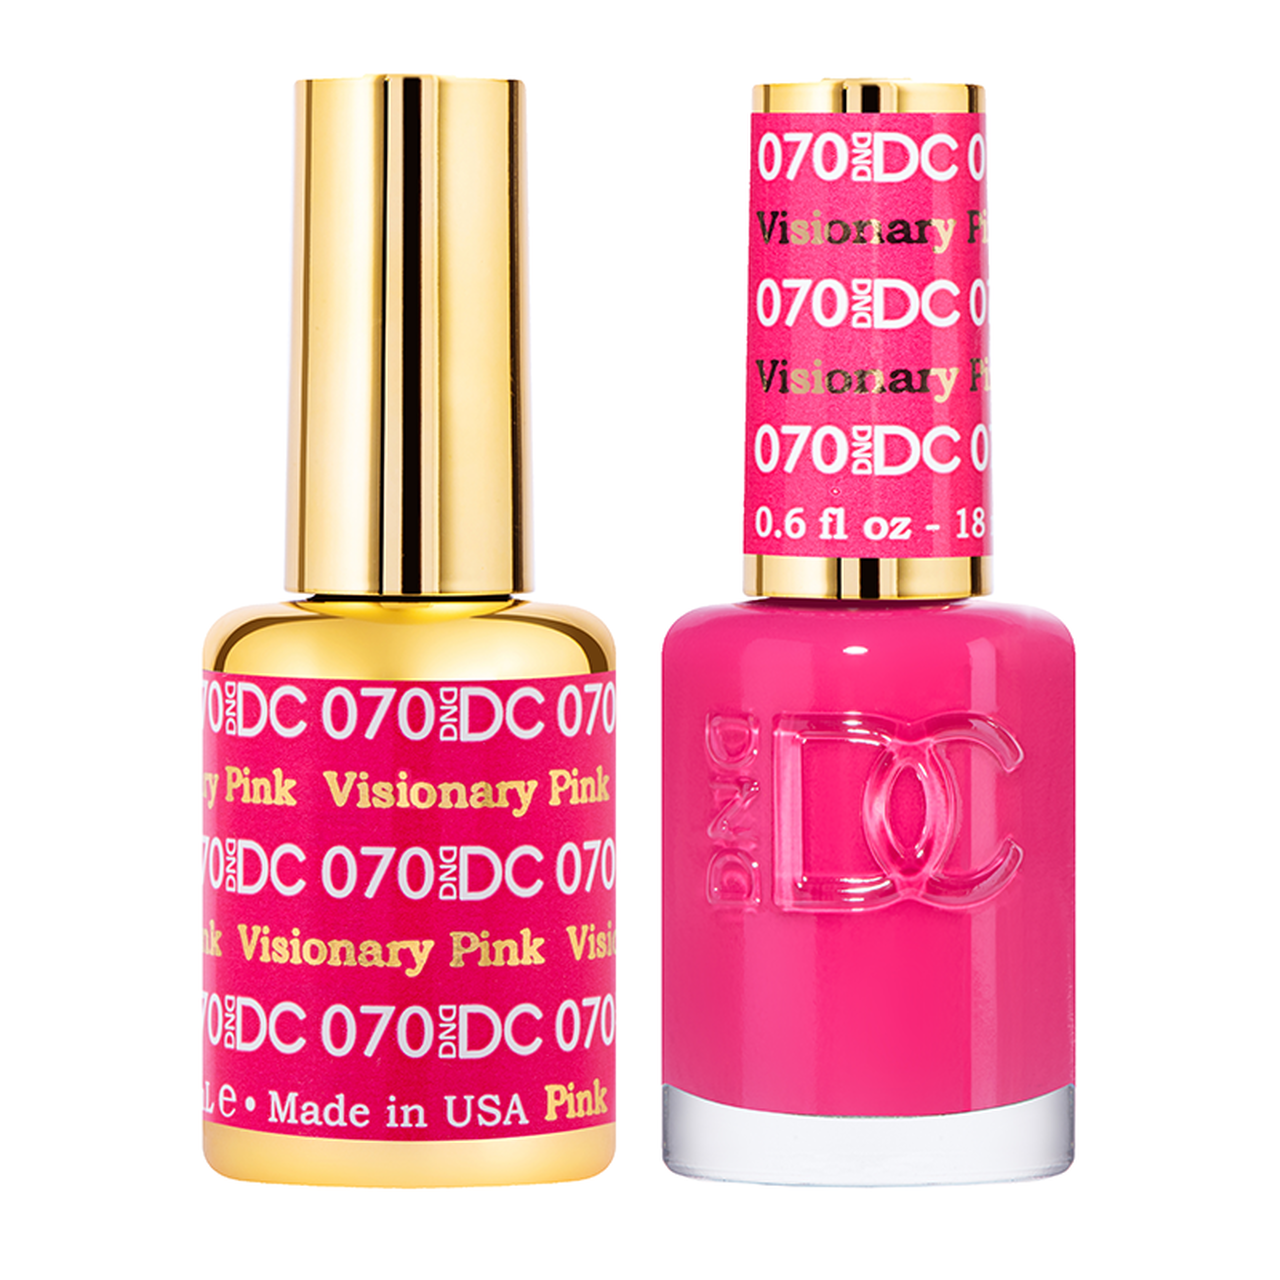 DND DC DUO GEL - #070 VISIONARY PINK